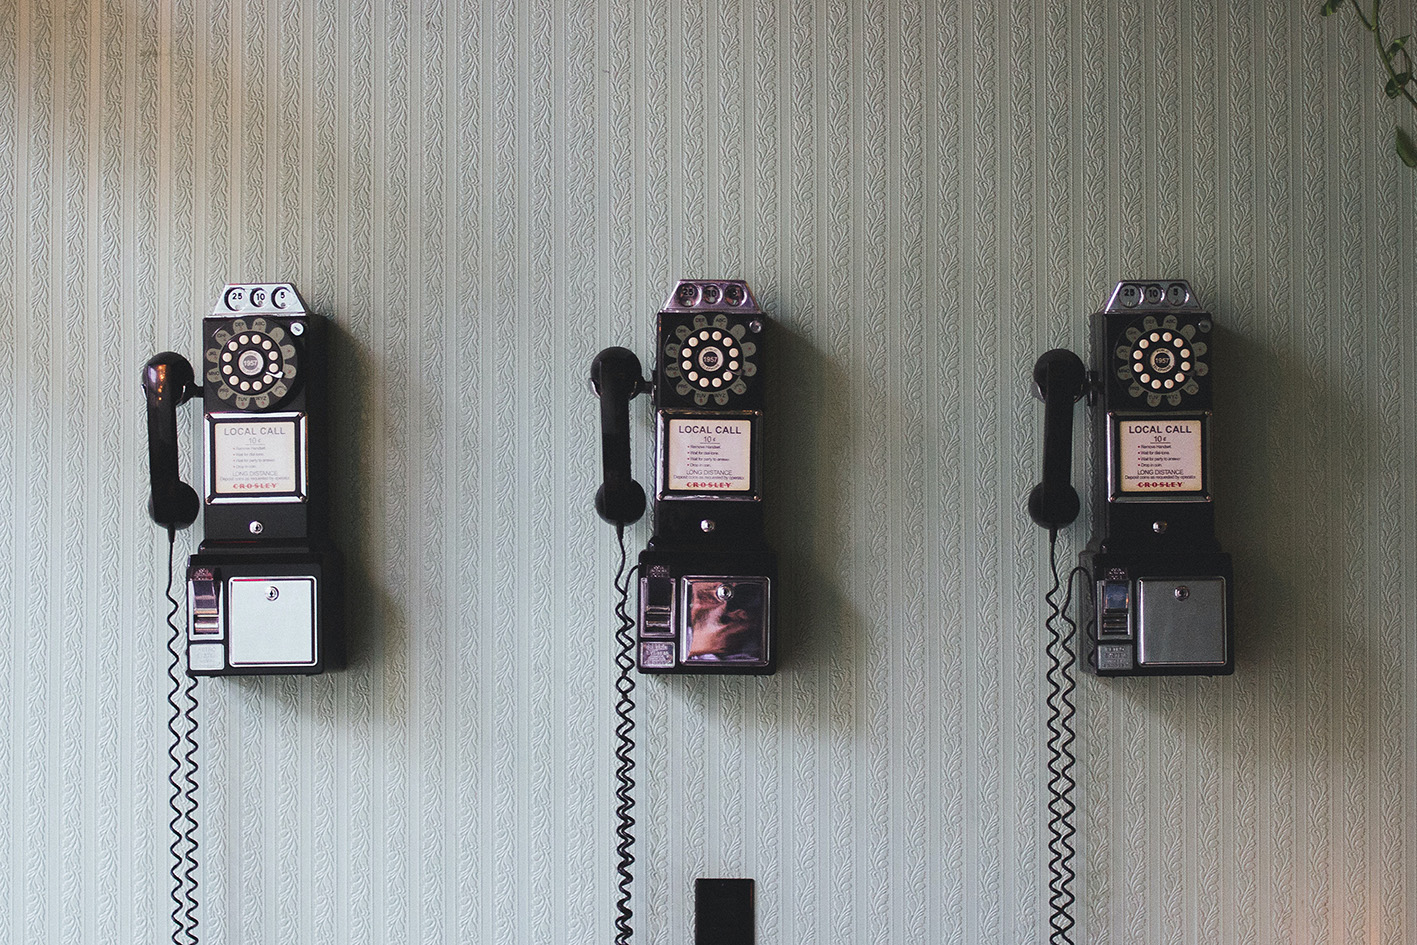 old rotary phones